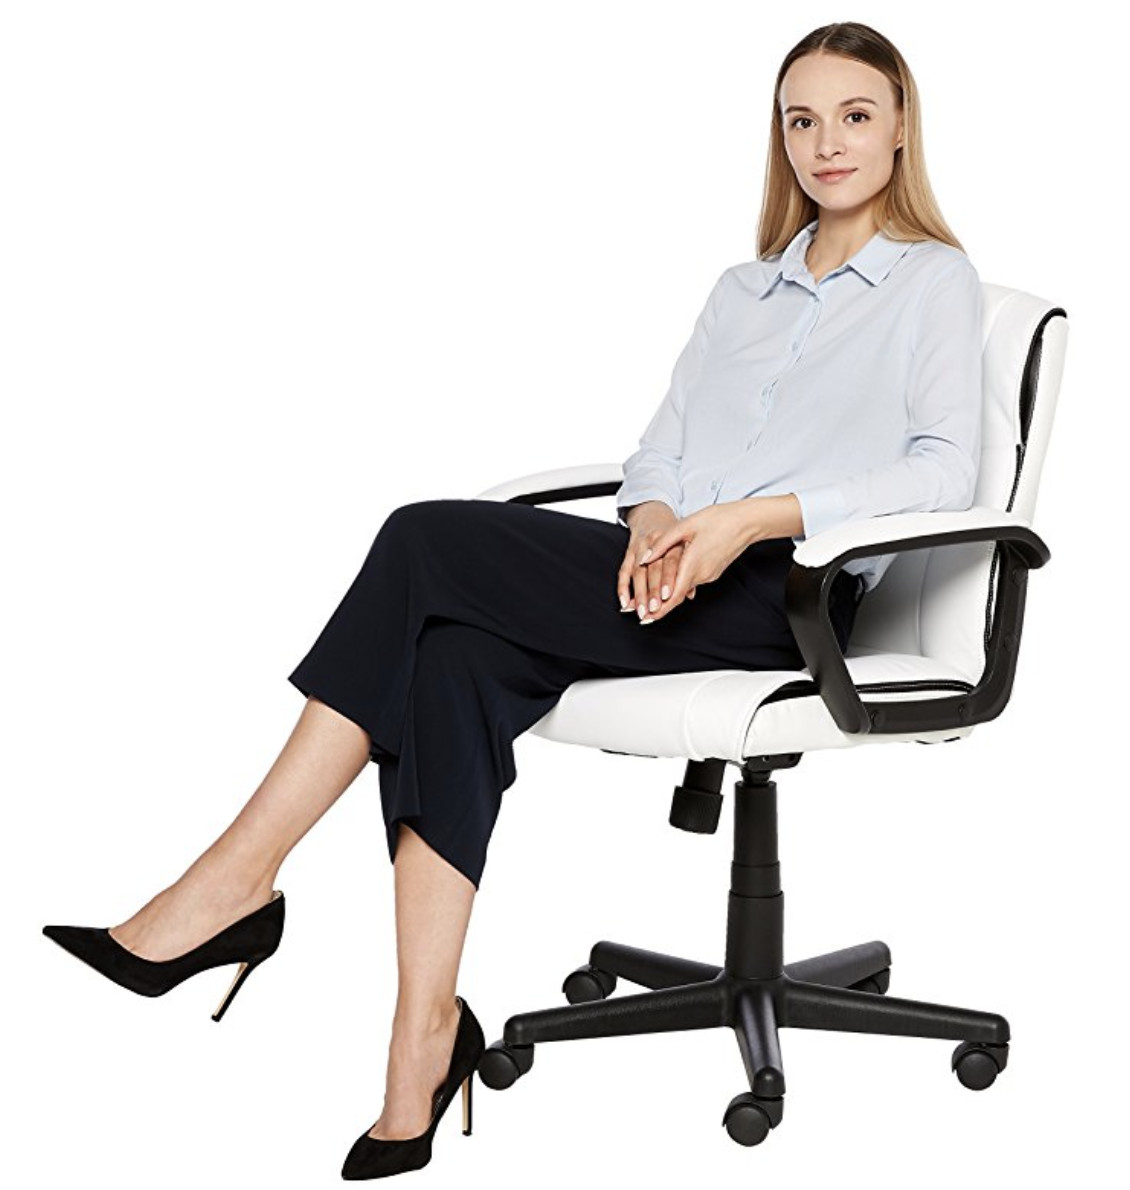 Office Chair Deals Amazonbasics Mid Back Office Chair Treat Yourself To